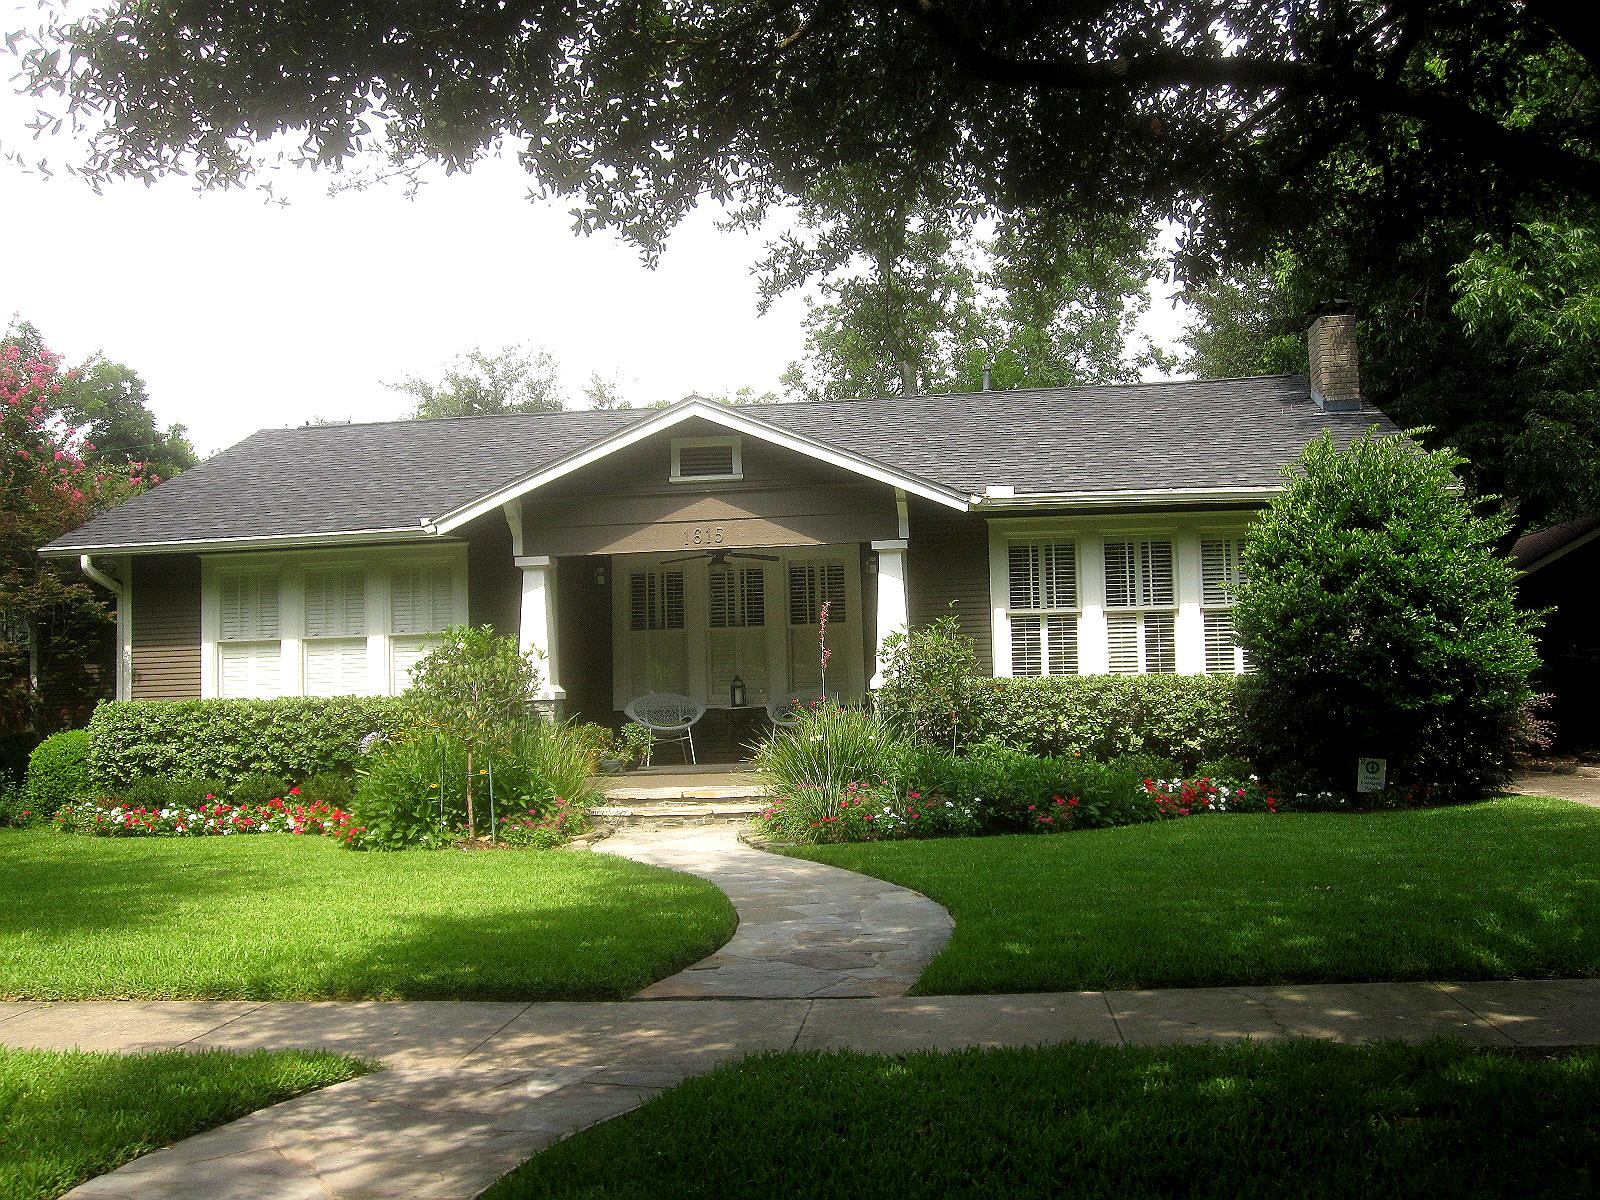 The other houston bungalow front yard garden ideas for Front yard lawn ideas